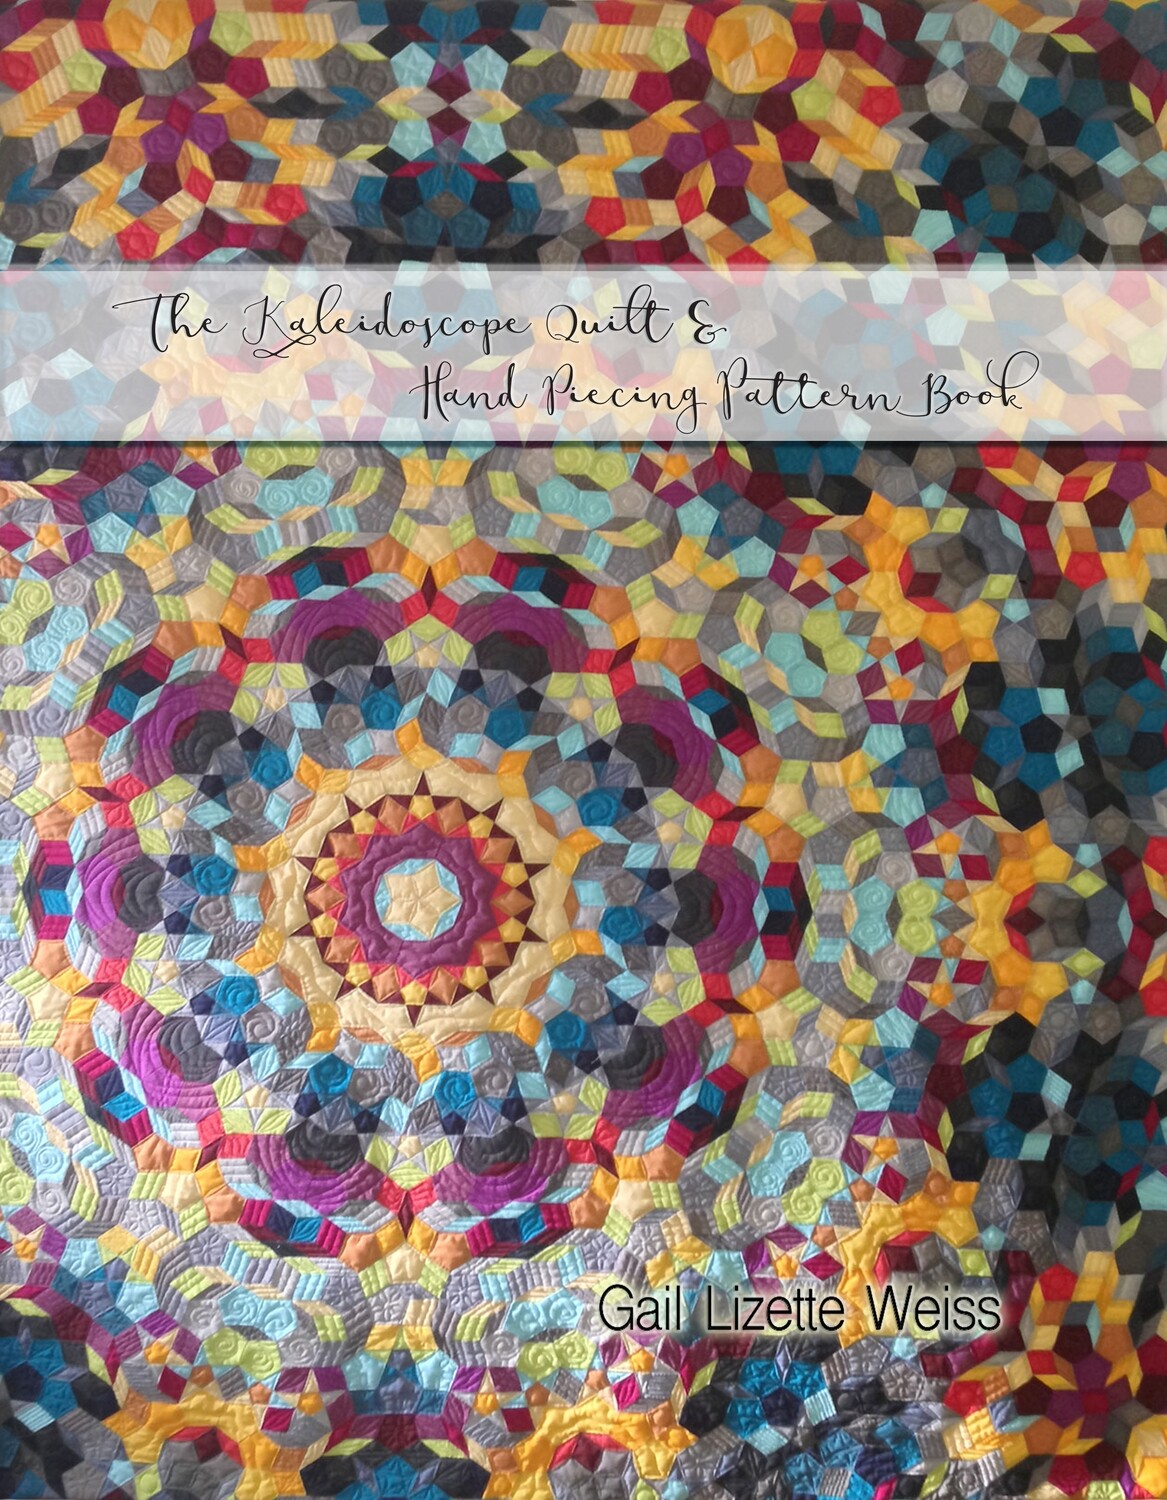 The Kaliedoscope Quilt PDF Pattern - for Hand Piecing